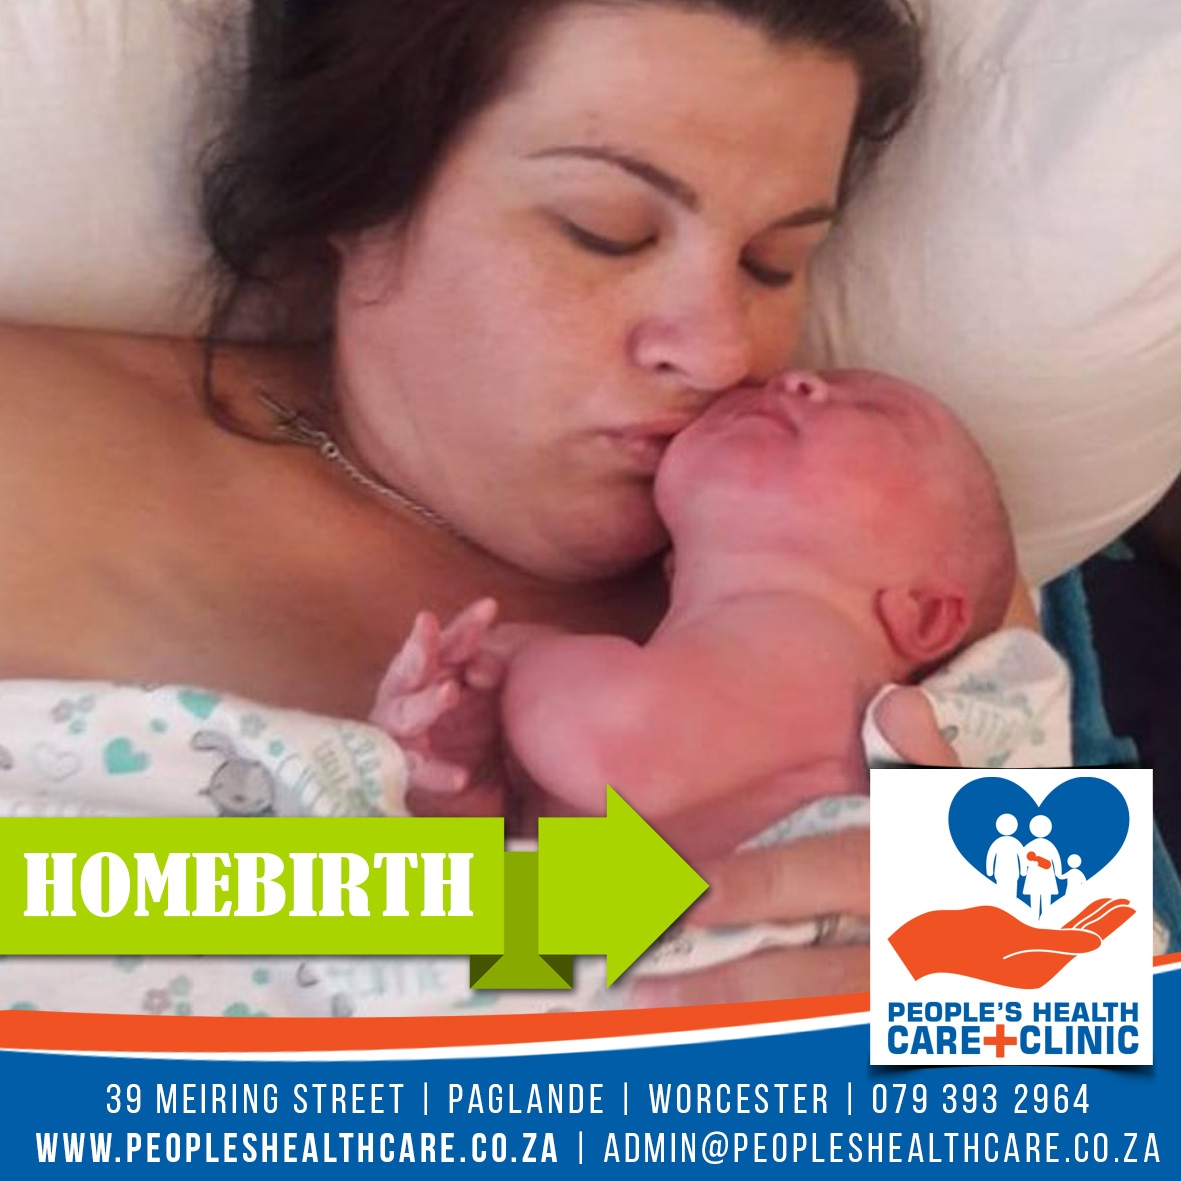 peoples-health-care-clinic-worcester-homebirth3